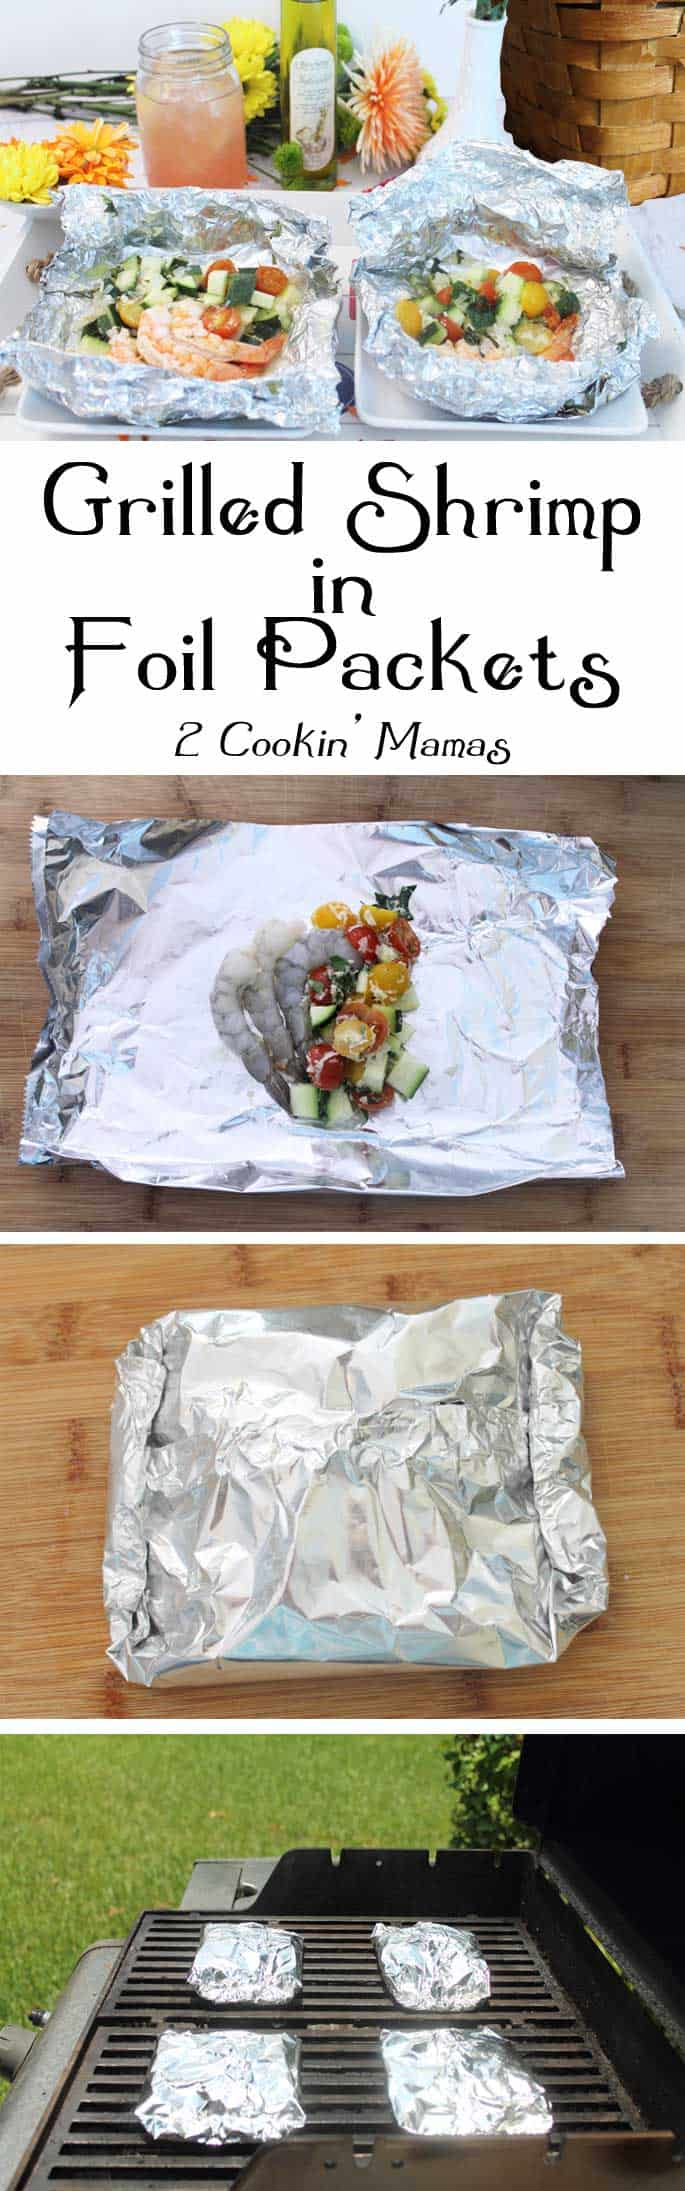 Grilled-Shrimp-Foil-Packet Dinner main | 2 Cookin Mamas Quick & easy dinner. Marinate, wrap in foil, grill & serve. Easy cleanup too! Great for backyard BBQs or campfires. #recipe